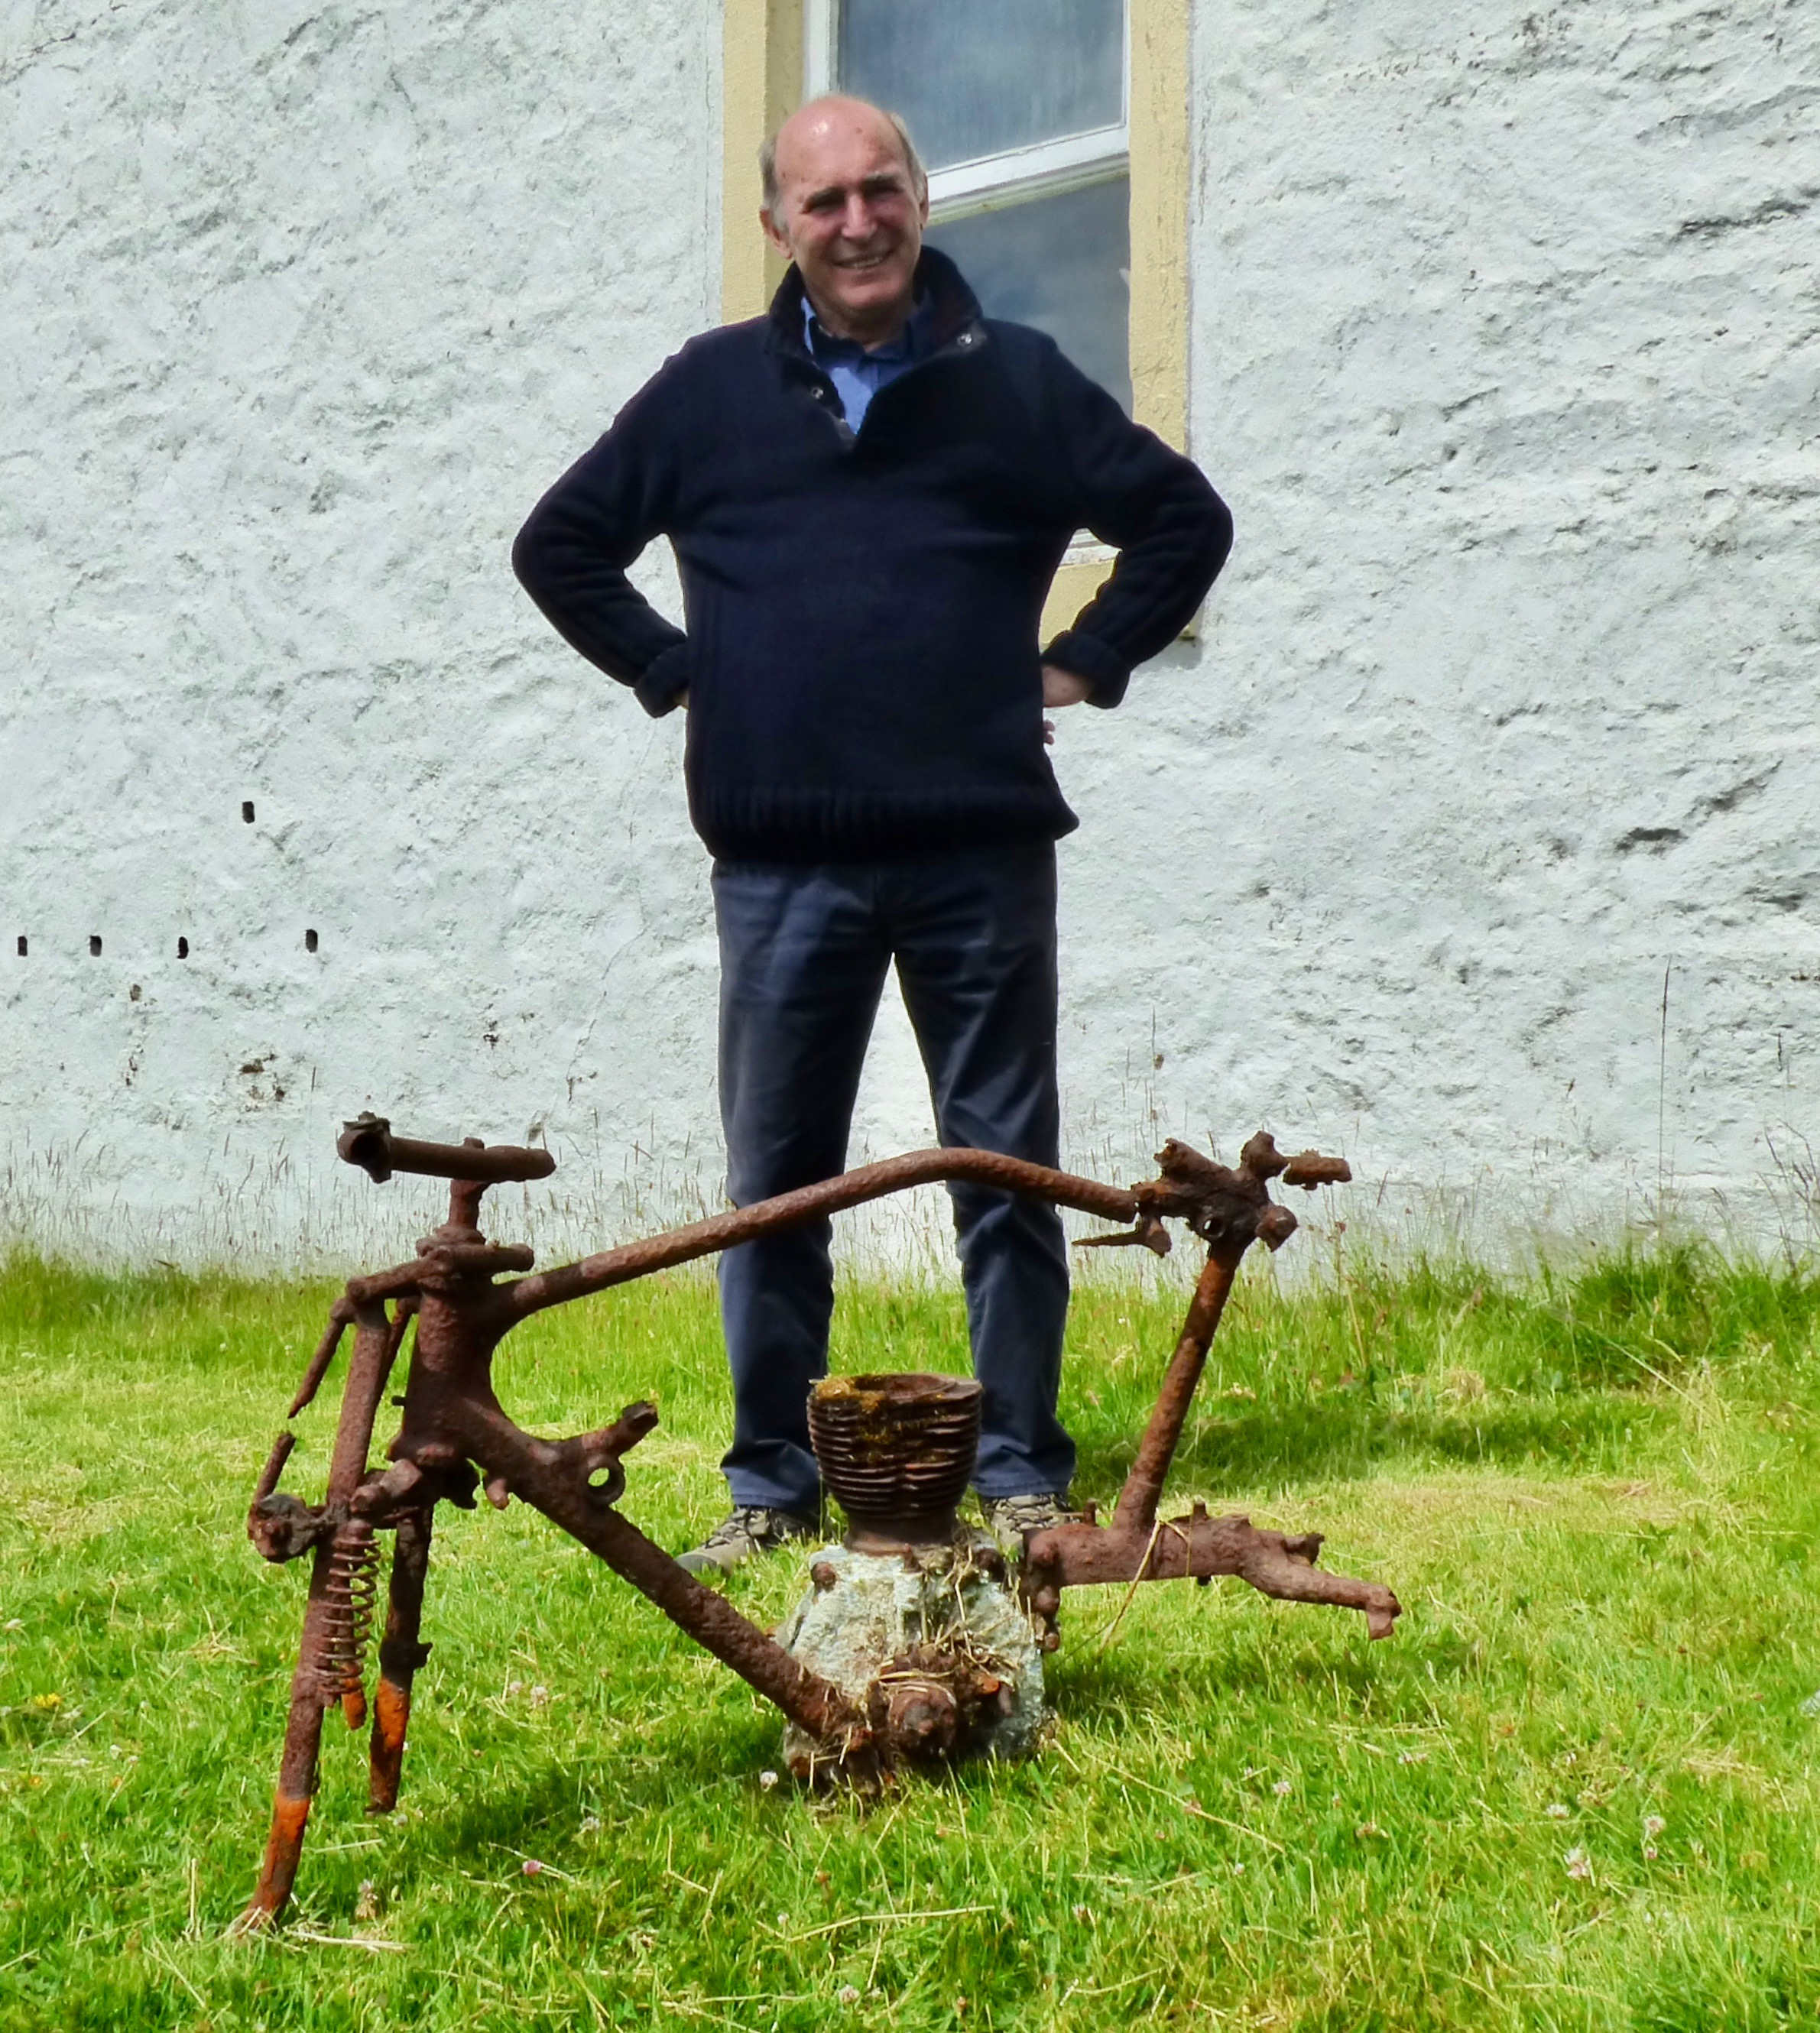 Norman Bissell at Barnhill with George Orwell's old motorbike.